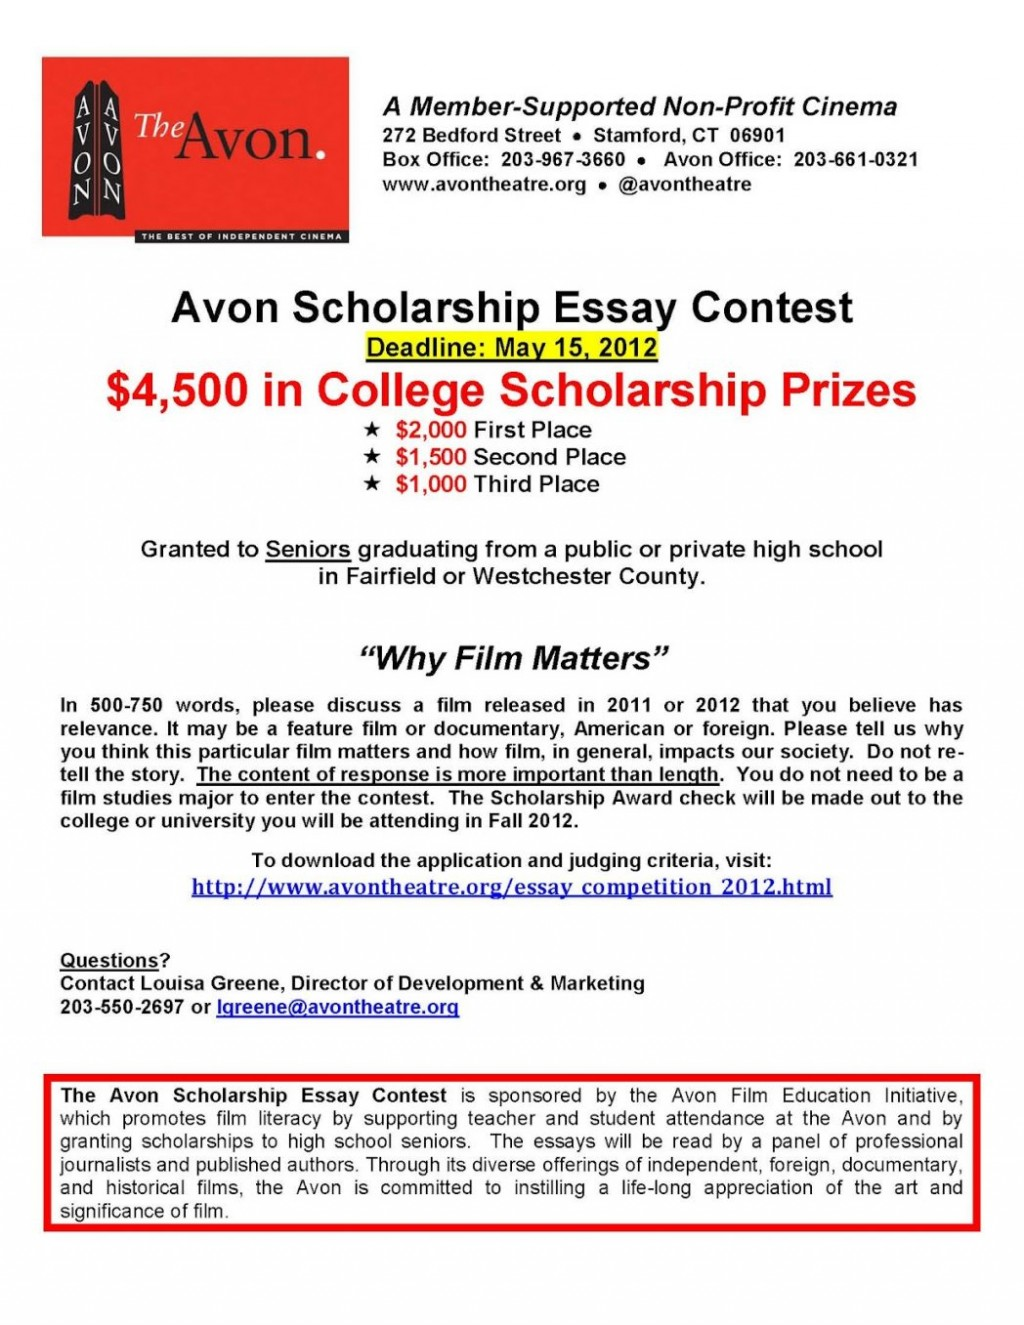 021 No Essay College Scholarship Prowler Avonscholarshipessaycontest2012 Easy Scholarships For High School Students 1048x1357 Without Astounding Essays 2019 2018 Large